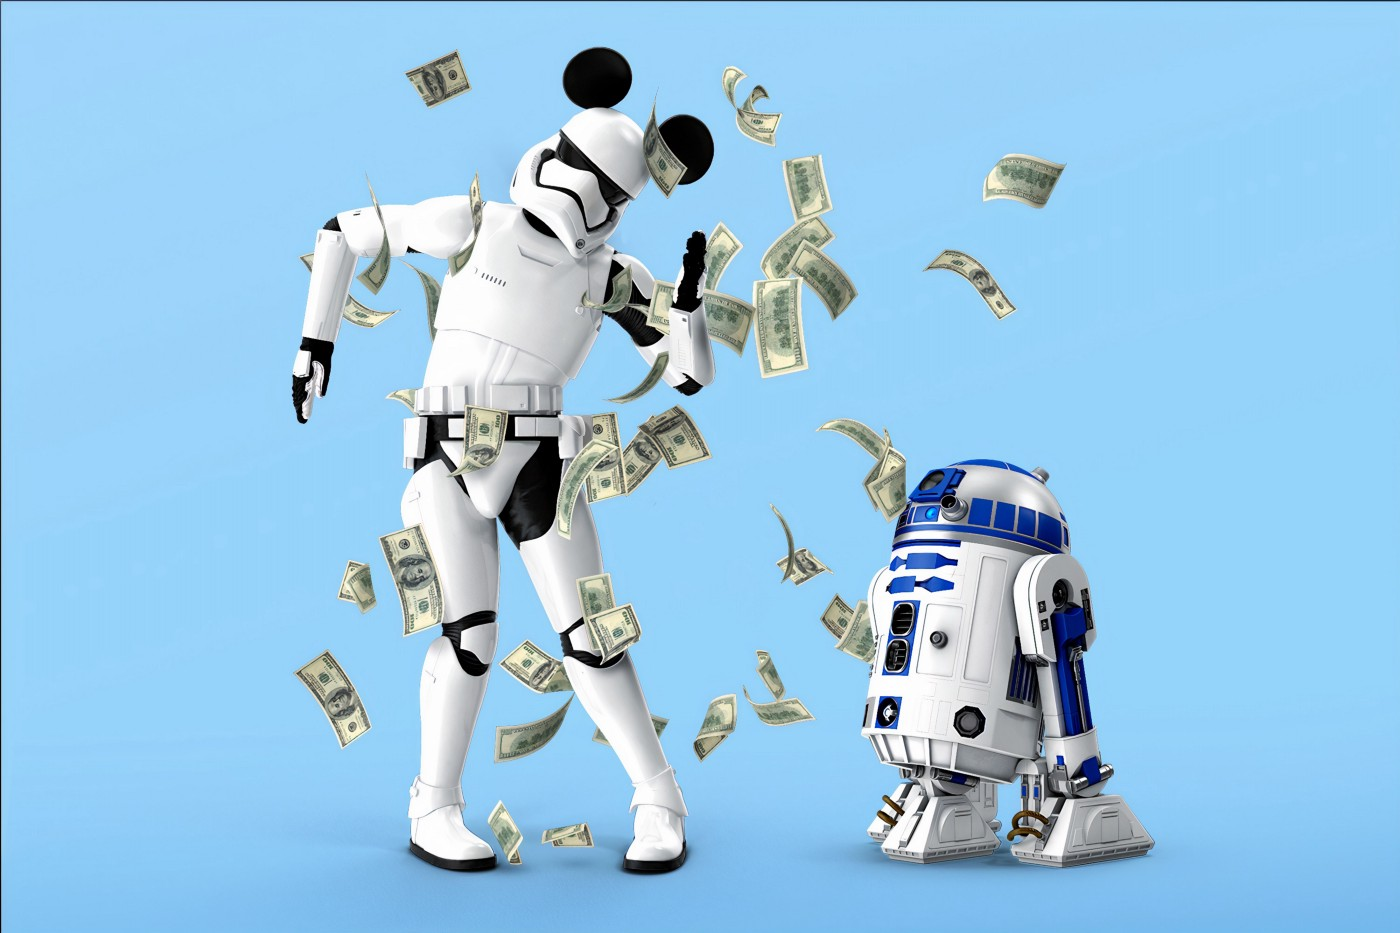 Two Star Wars characters dancing in money falling from the sky